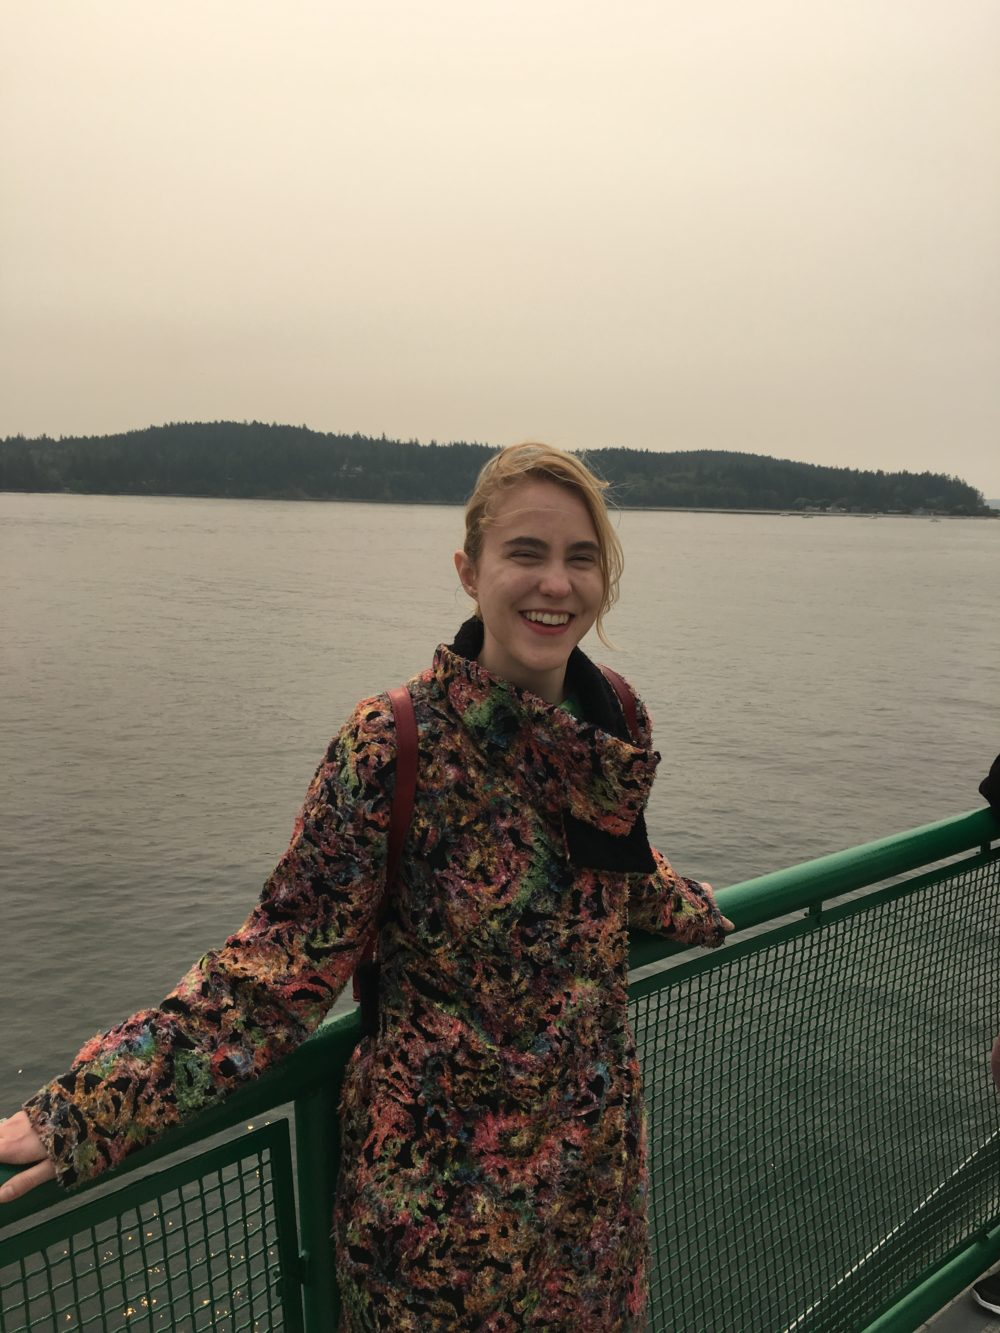 Me on a ferry on the water. It's very smoky.